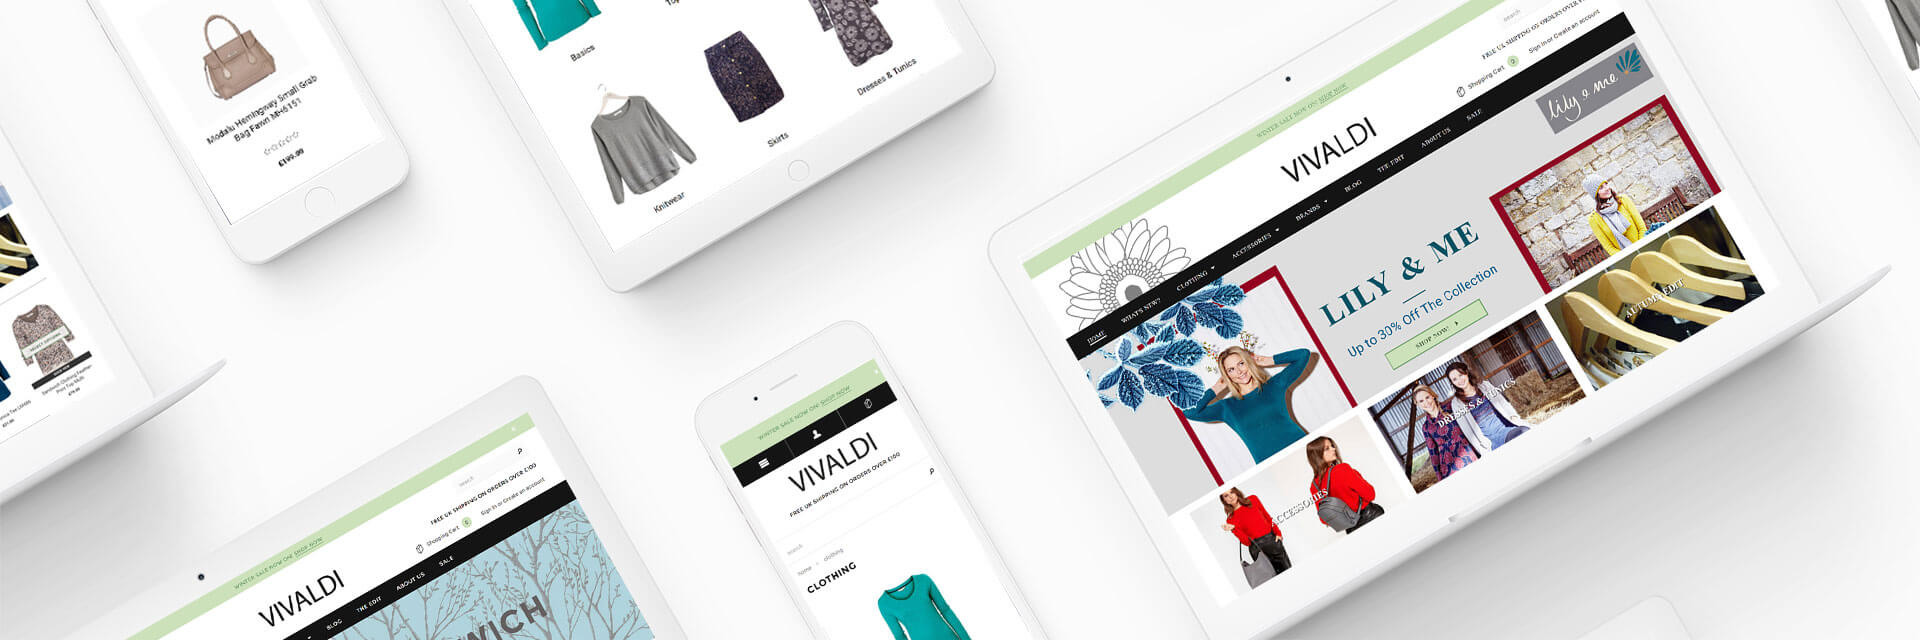 Vivaldi Shopify Ecommerce Project